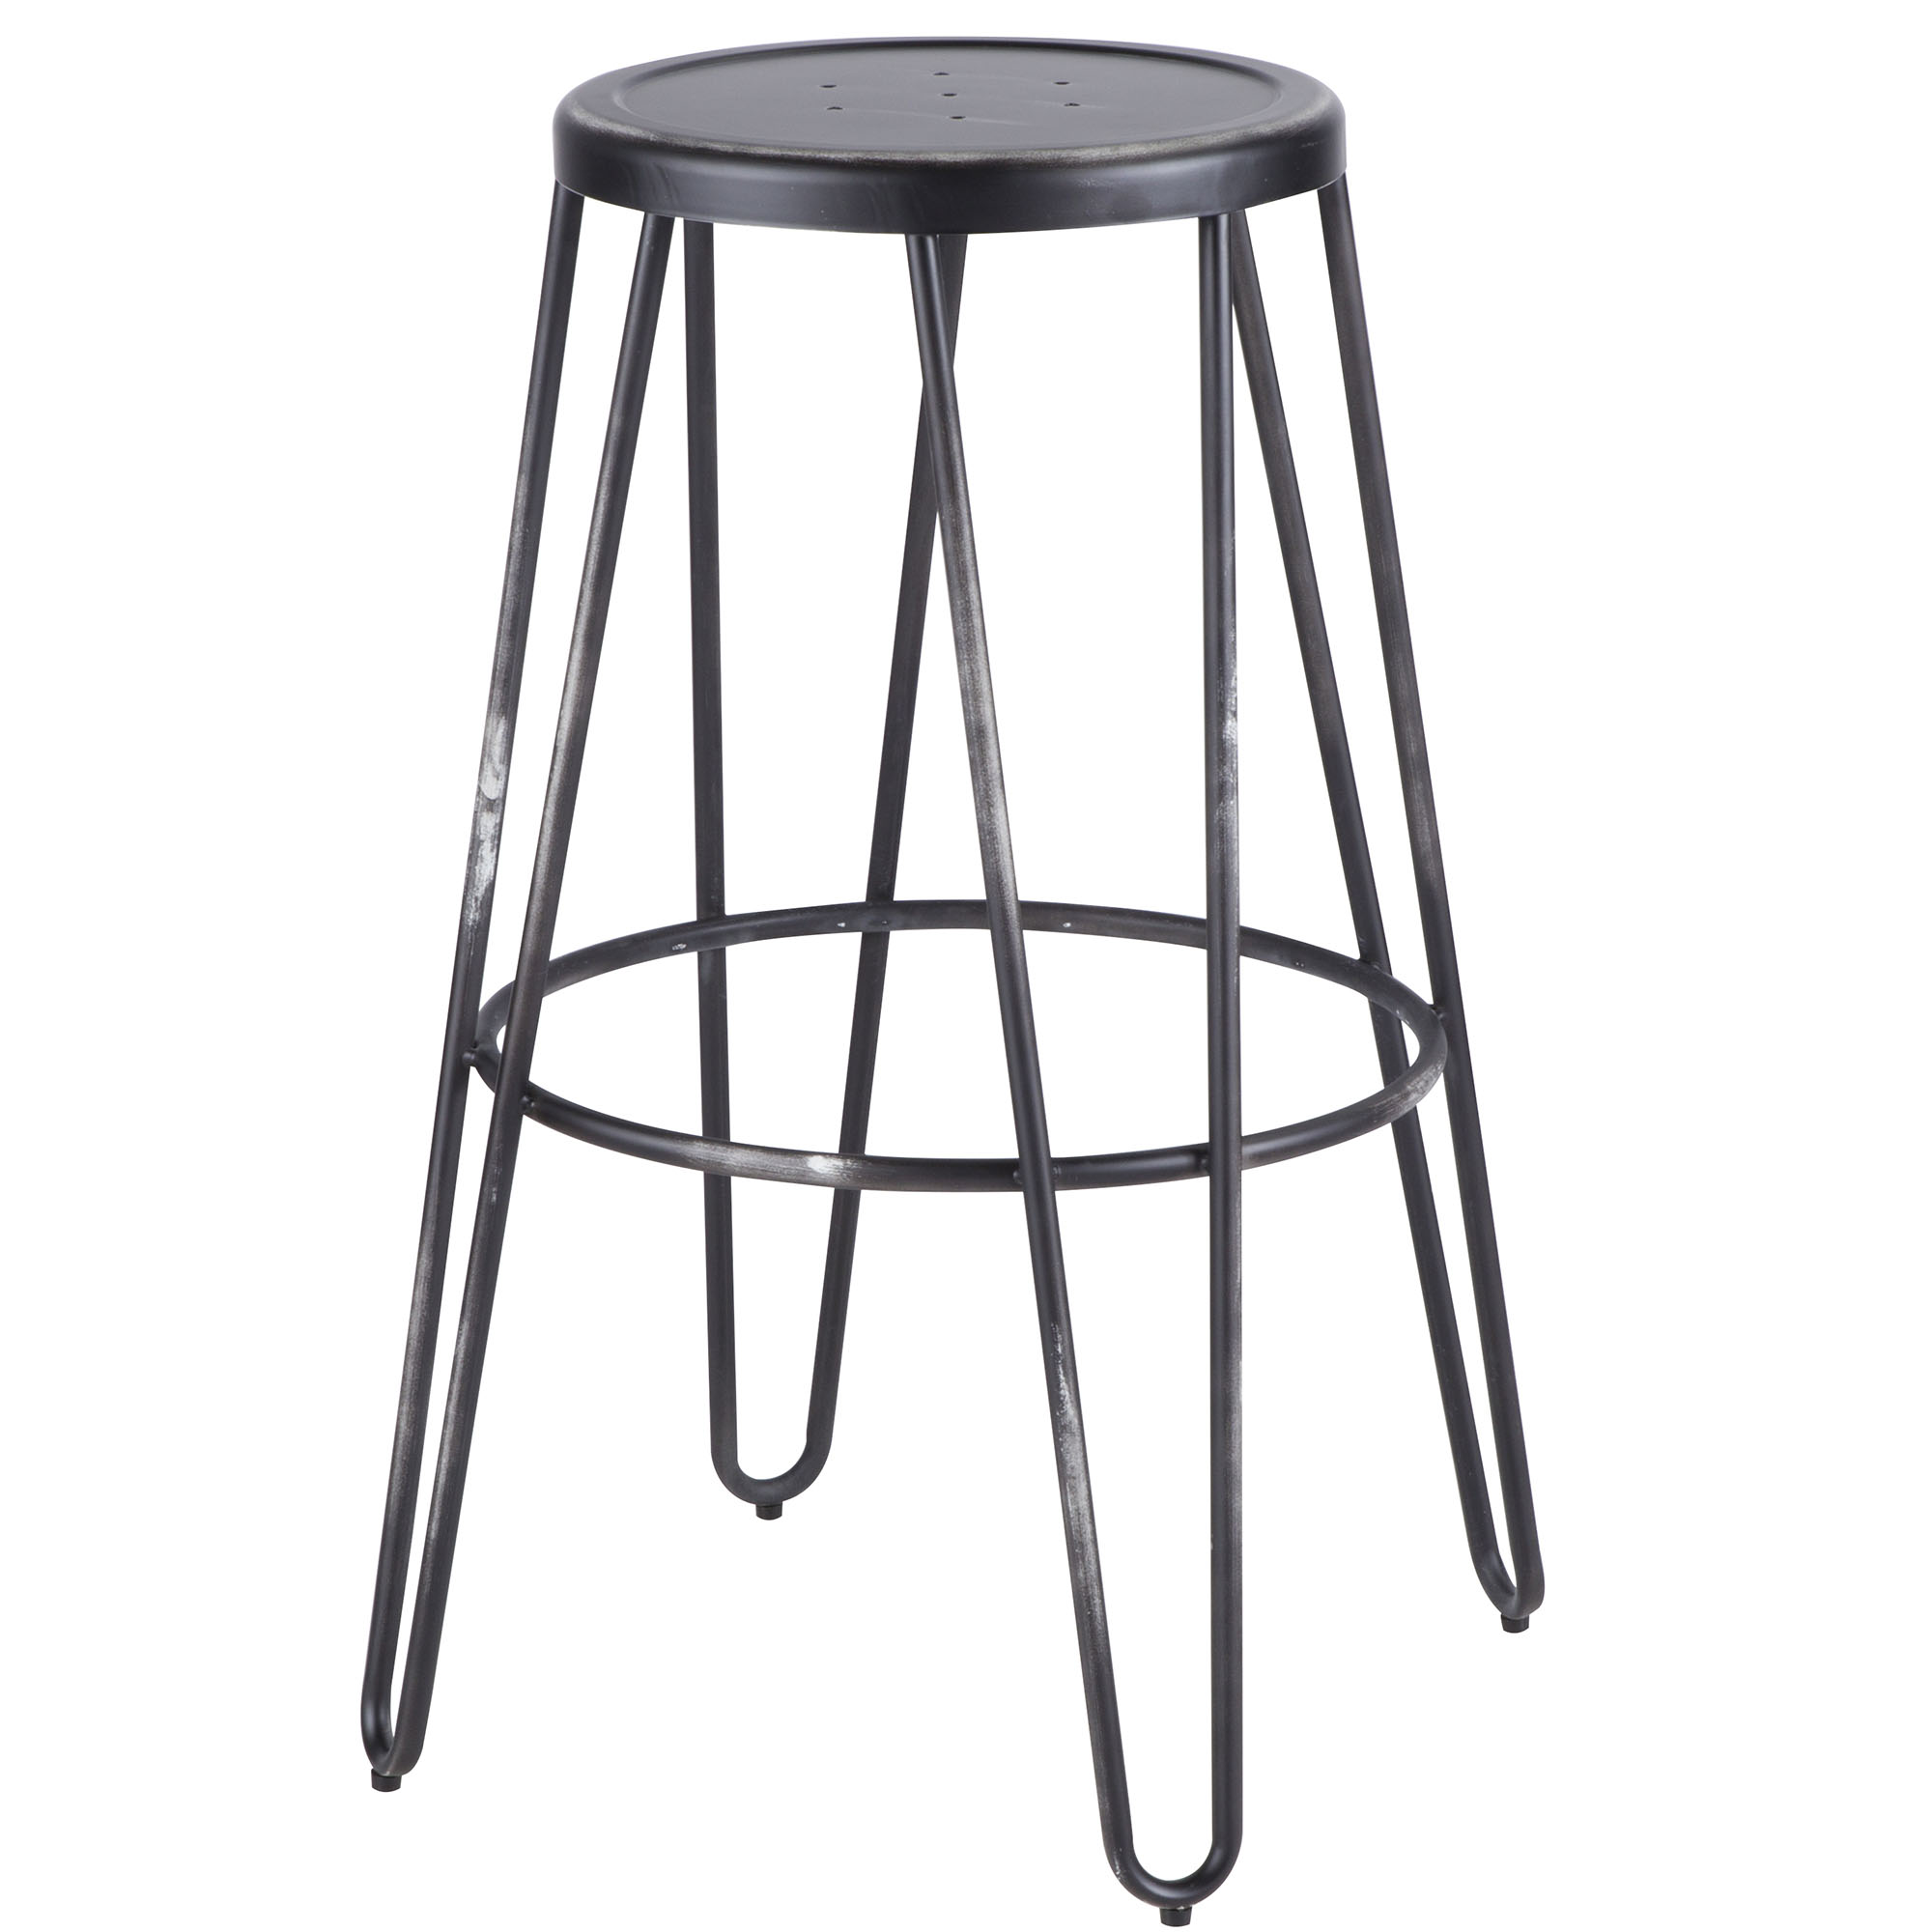 Avery Industrial Metal Bar Stool in Vintage Black by Lumisource Set of 2 by LumiSource